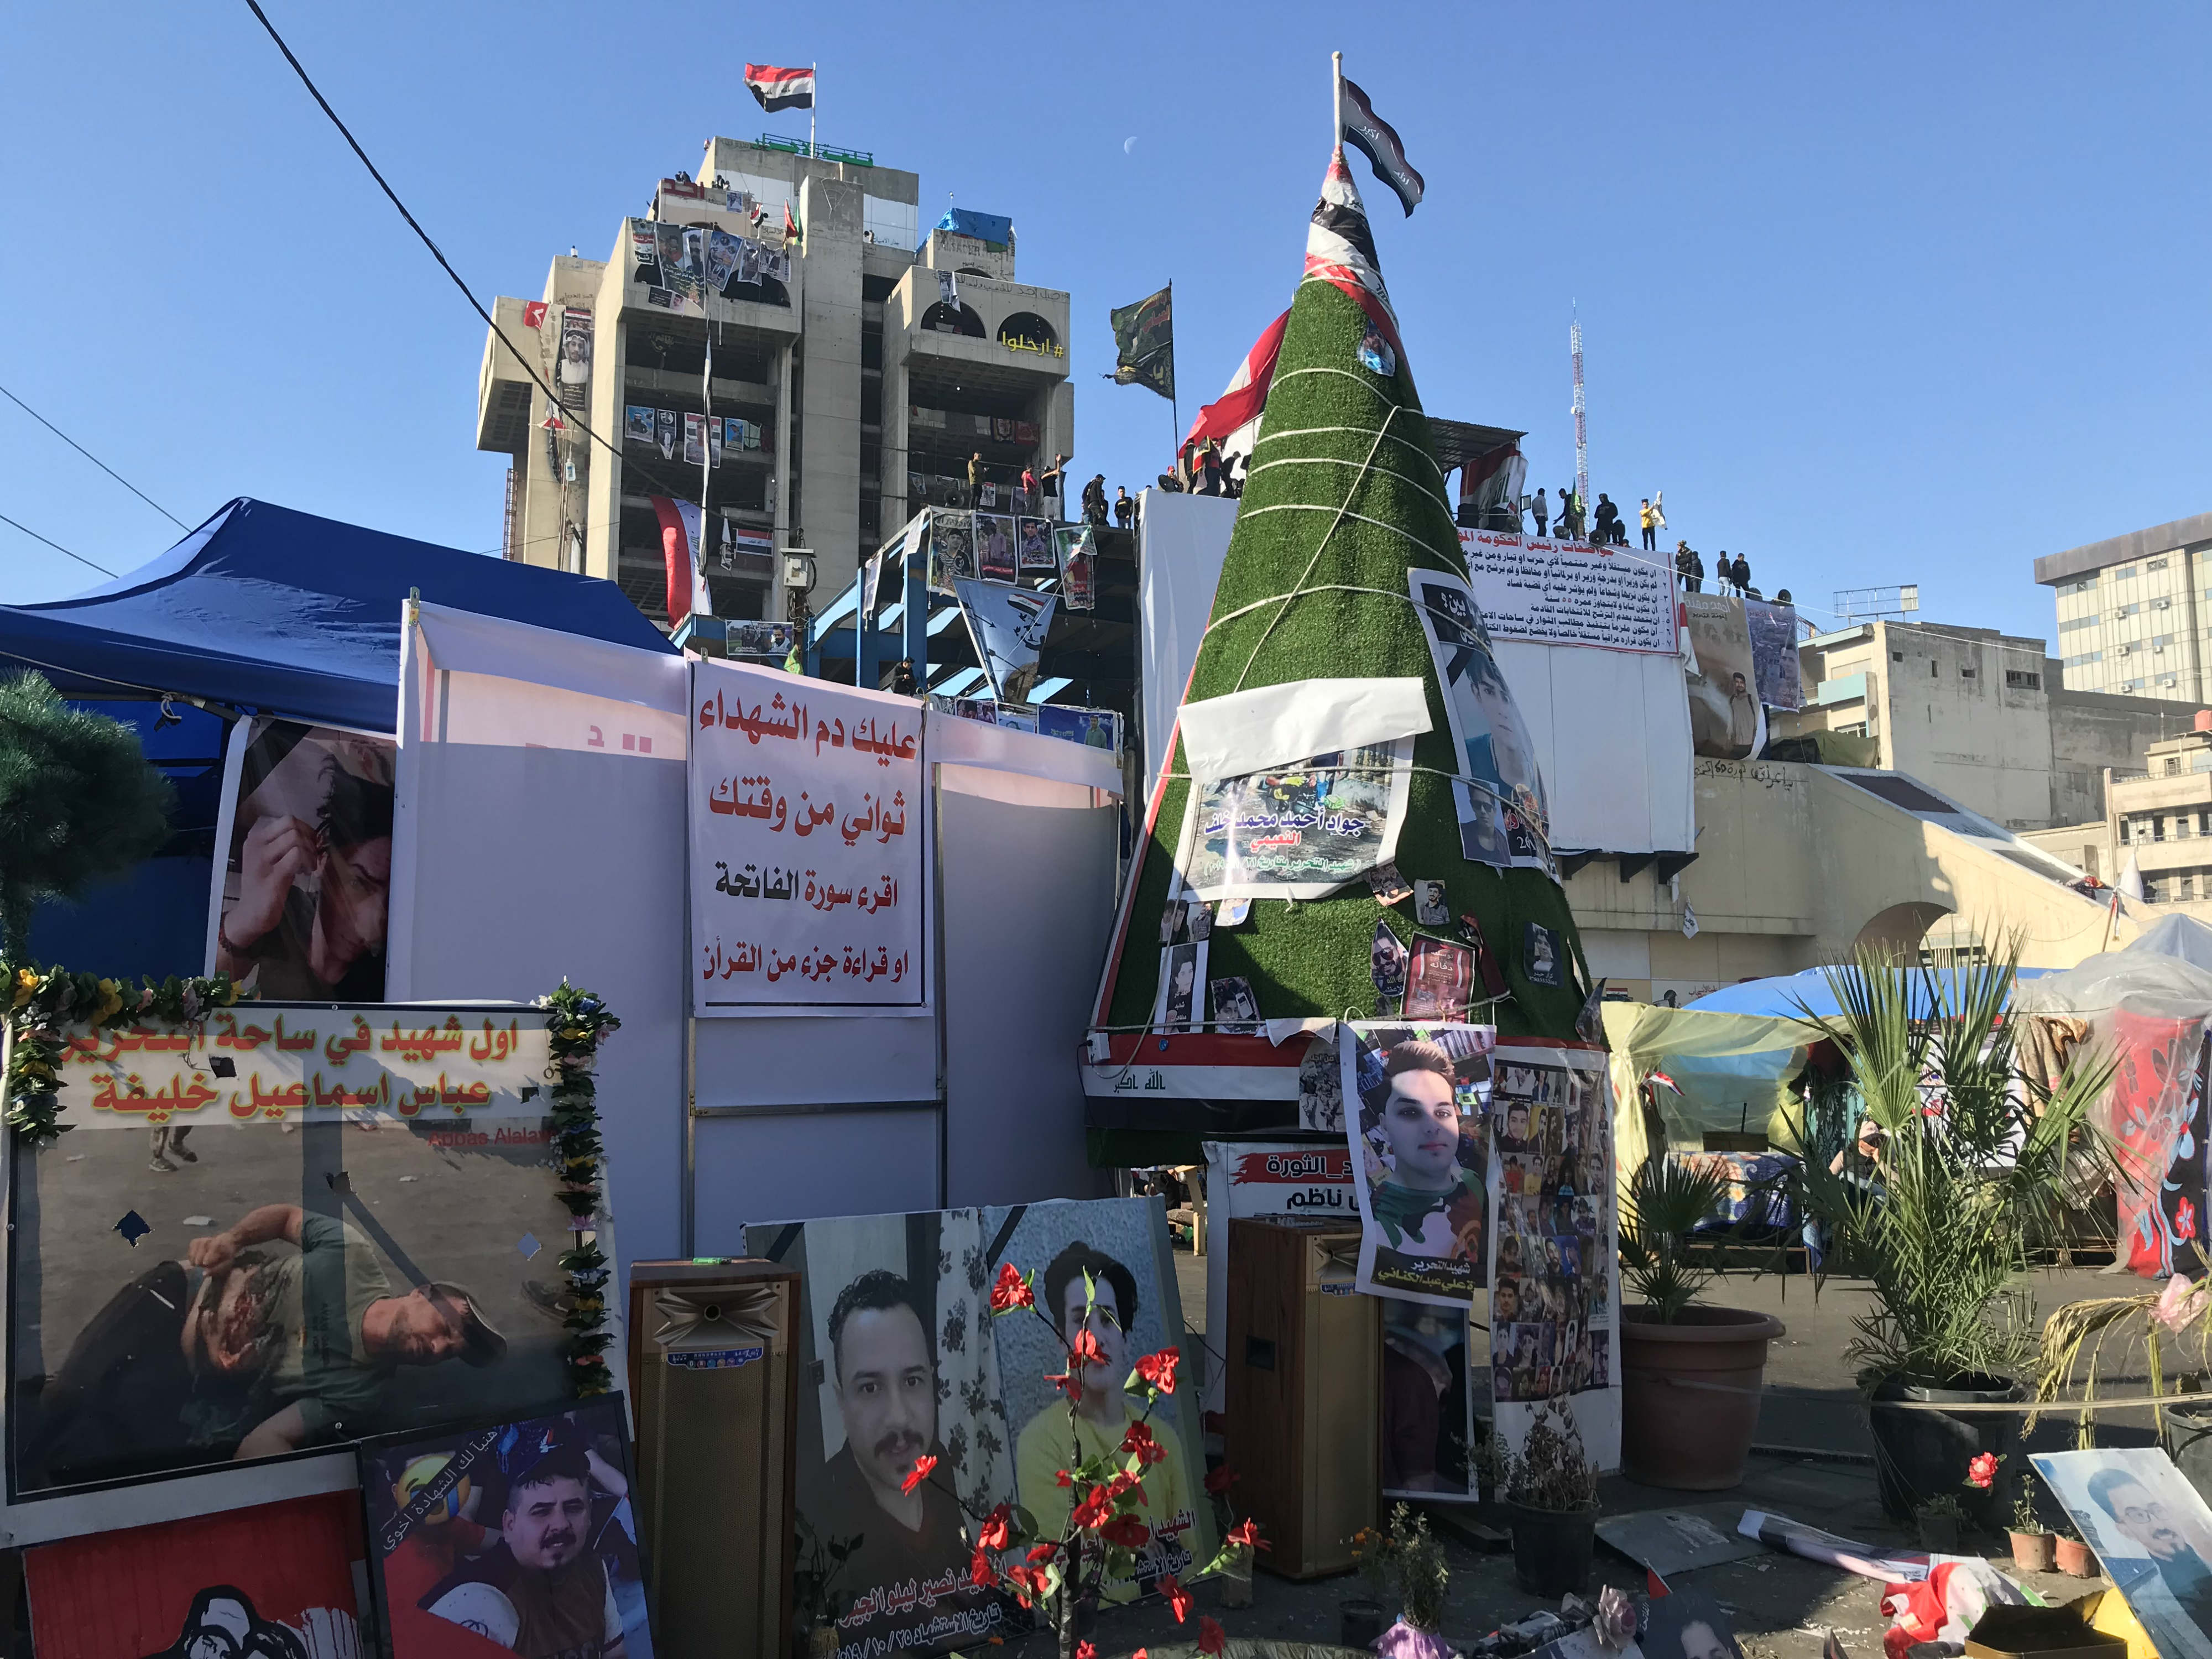 Protesters in Tahrir Square put up pictures of martyrs and decorated them with lights (MEE/Azhar Al-Rubaie)